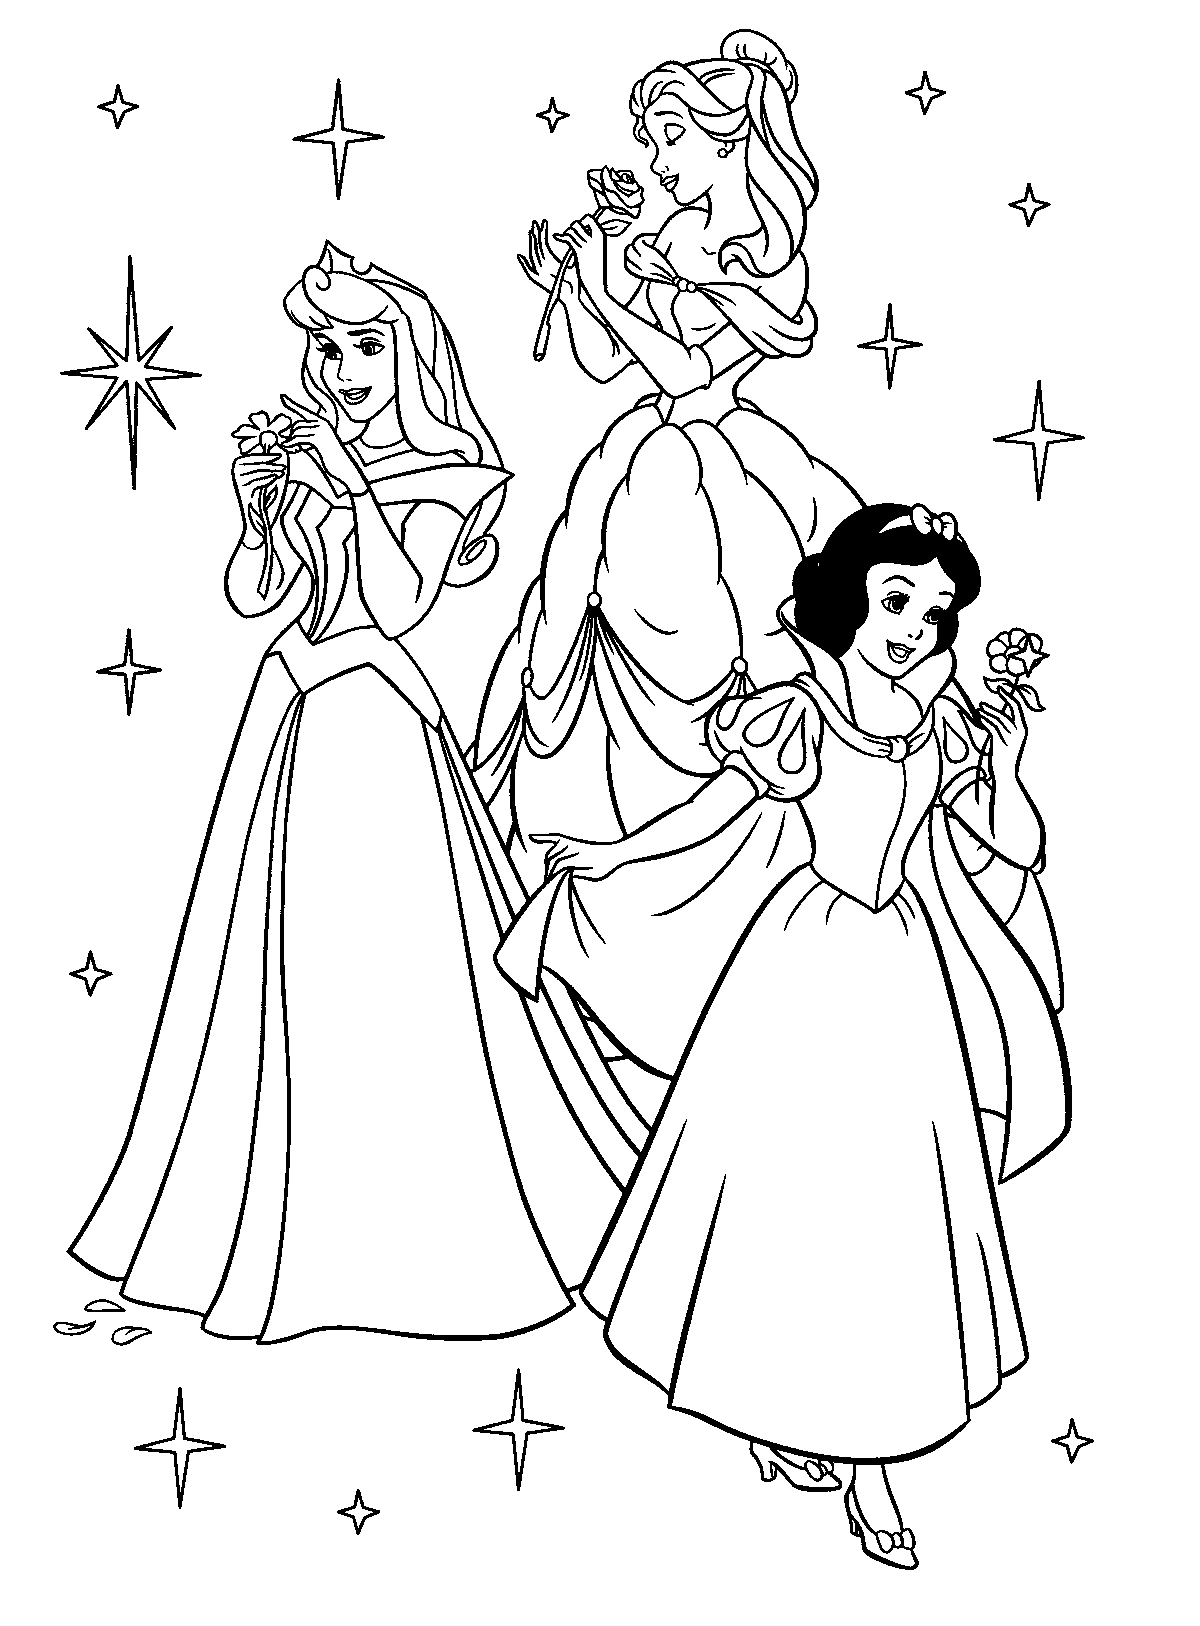 Disney Princess Coloring Pages Princess Coloring Pages 6  Coloring Kids